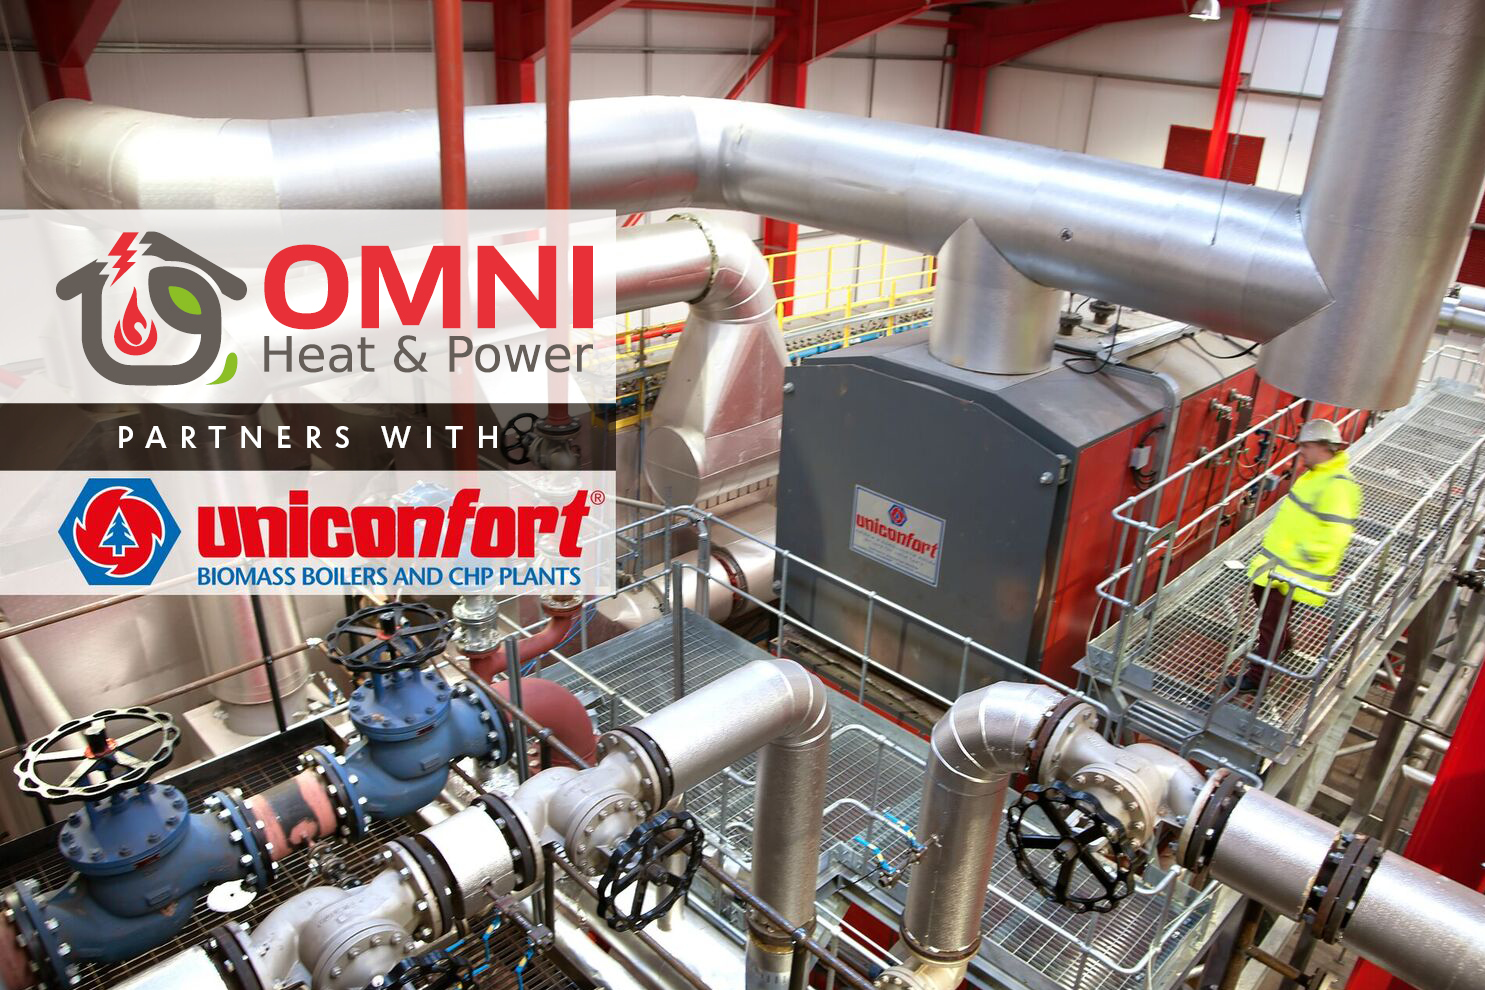 omni_heat_and_power_partners_with_uniconfort_biomass_boilers_commercial_and_industrial_heat_and_power_waste_to_energy_biomass_boilers_wood_chip_and_wood_pellets_3-2.jpg.png